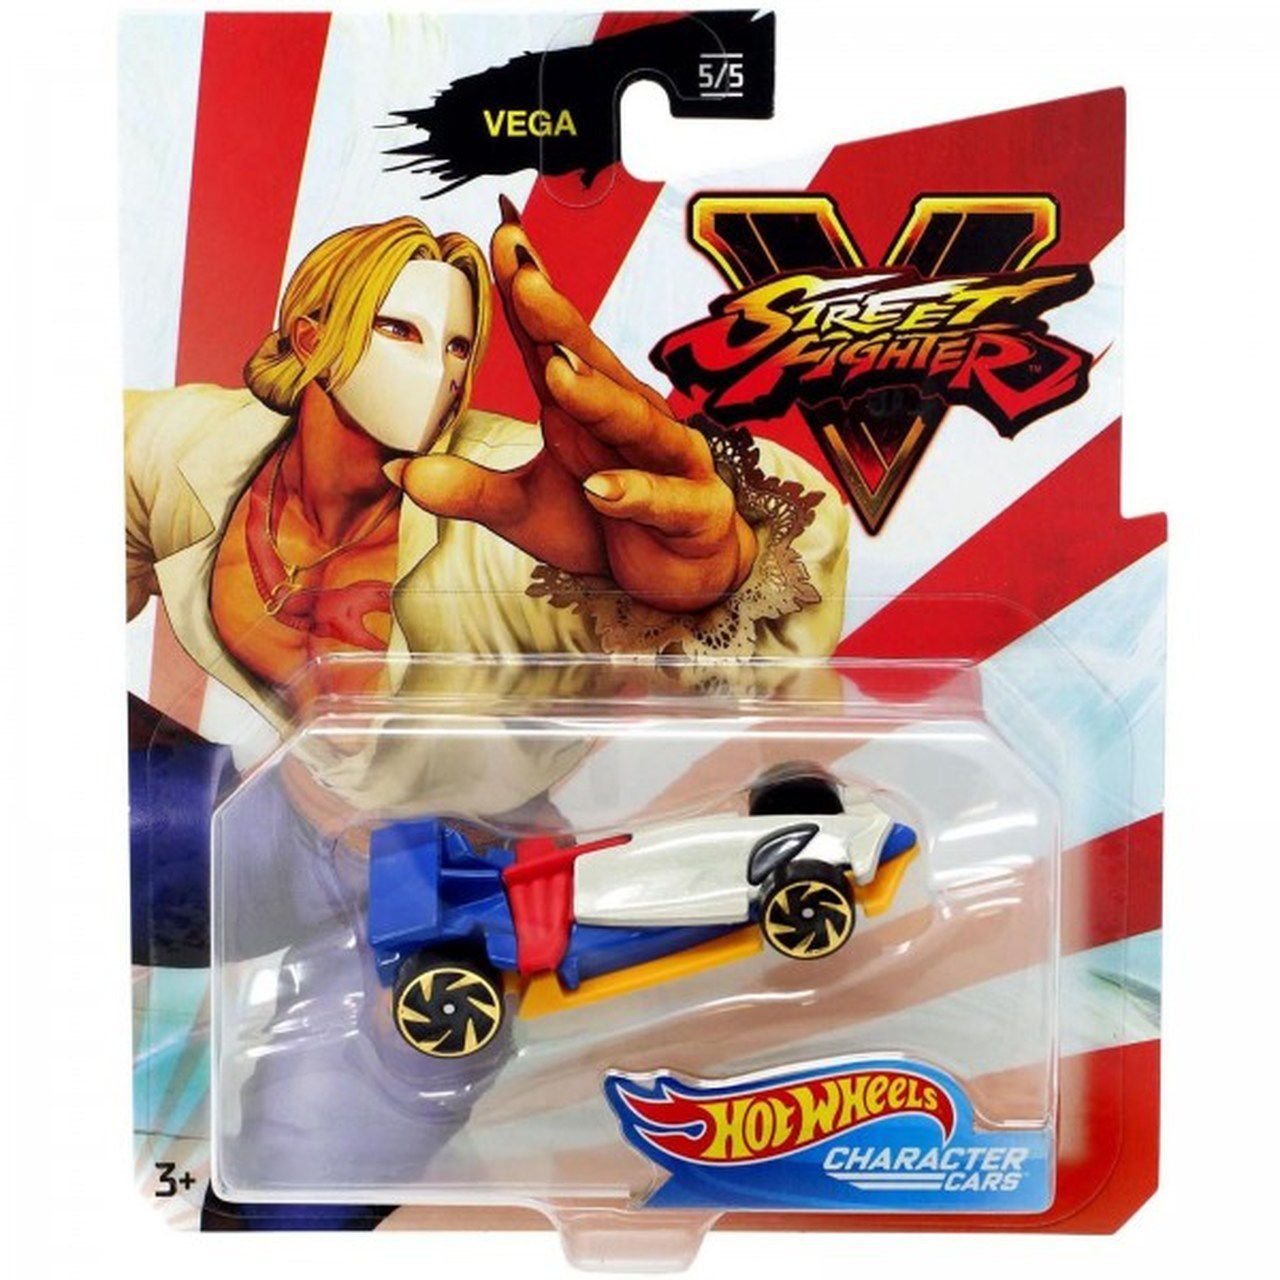 Carrinho Vega: Street Fighter V - Hot Wheels